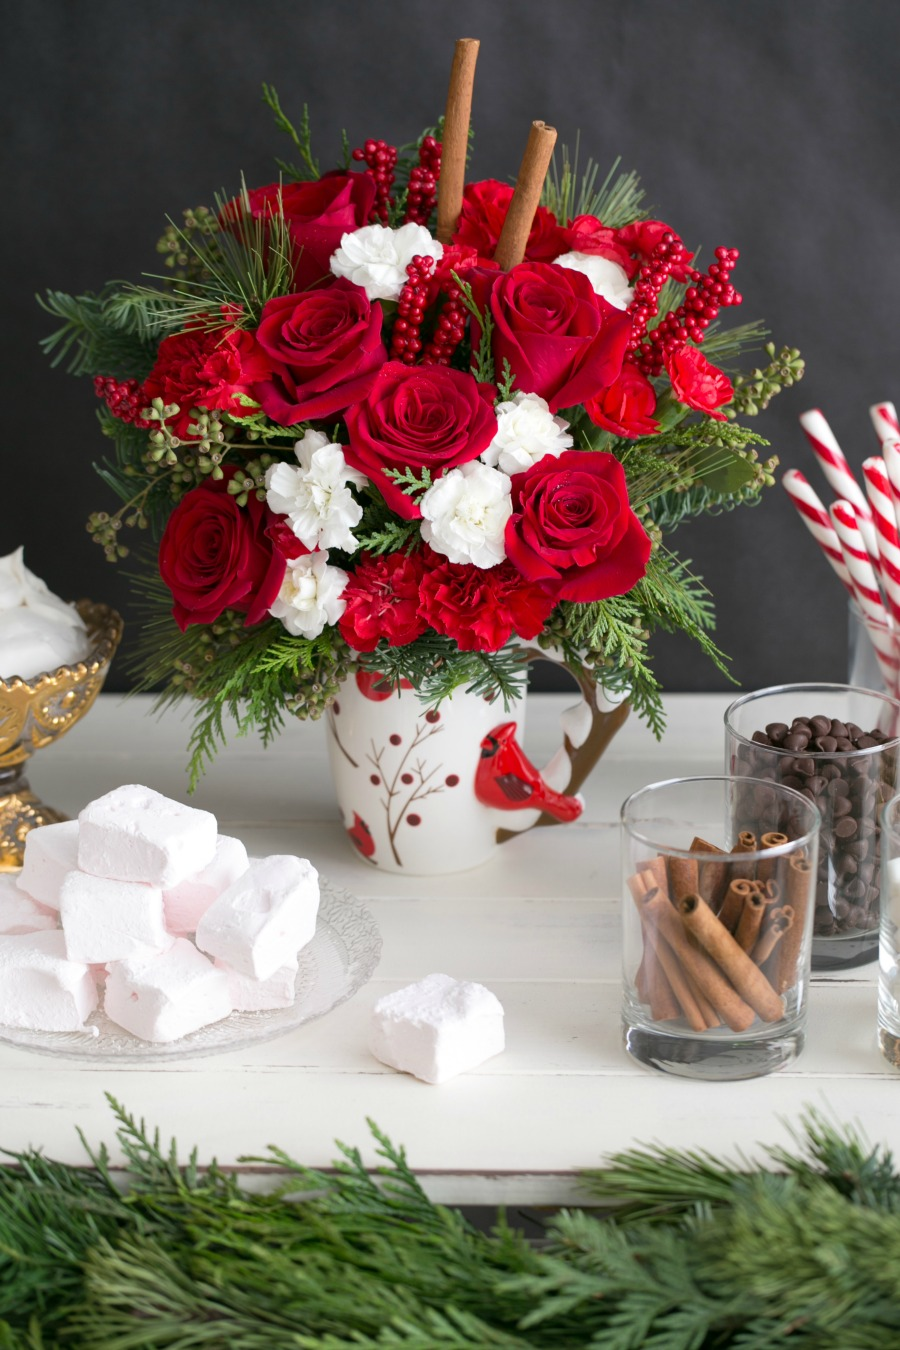 Looking for the perfect gift for someone this holiday season? See why we love the Send a Hug Christmas Cardinal Bouquet from Teleflora here!